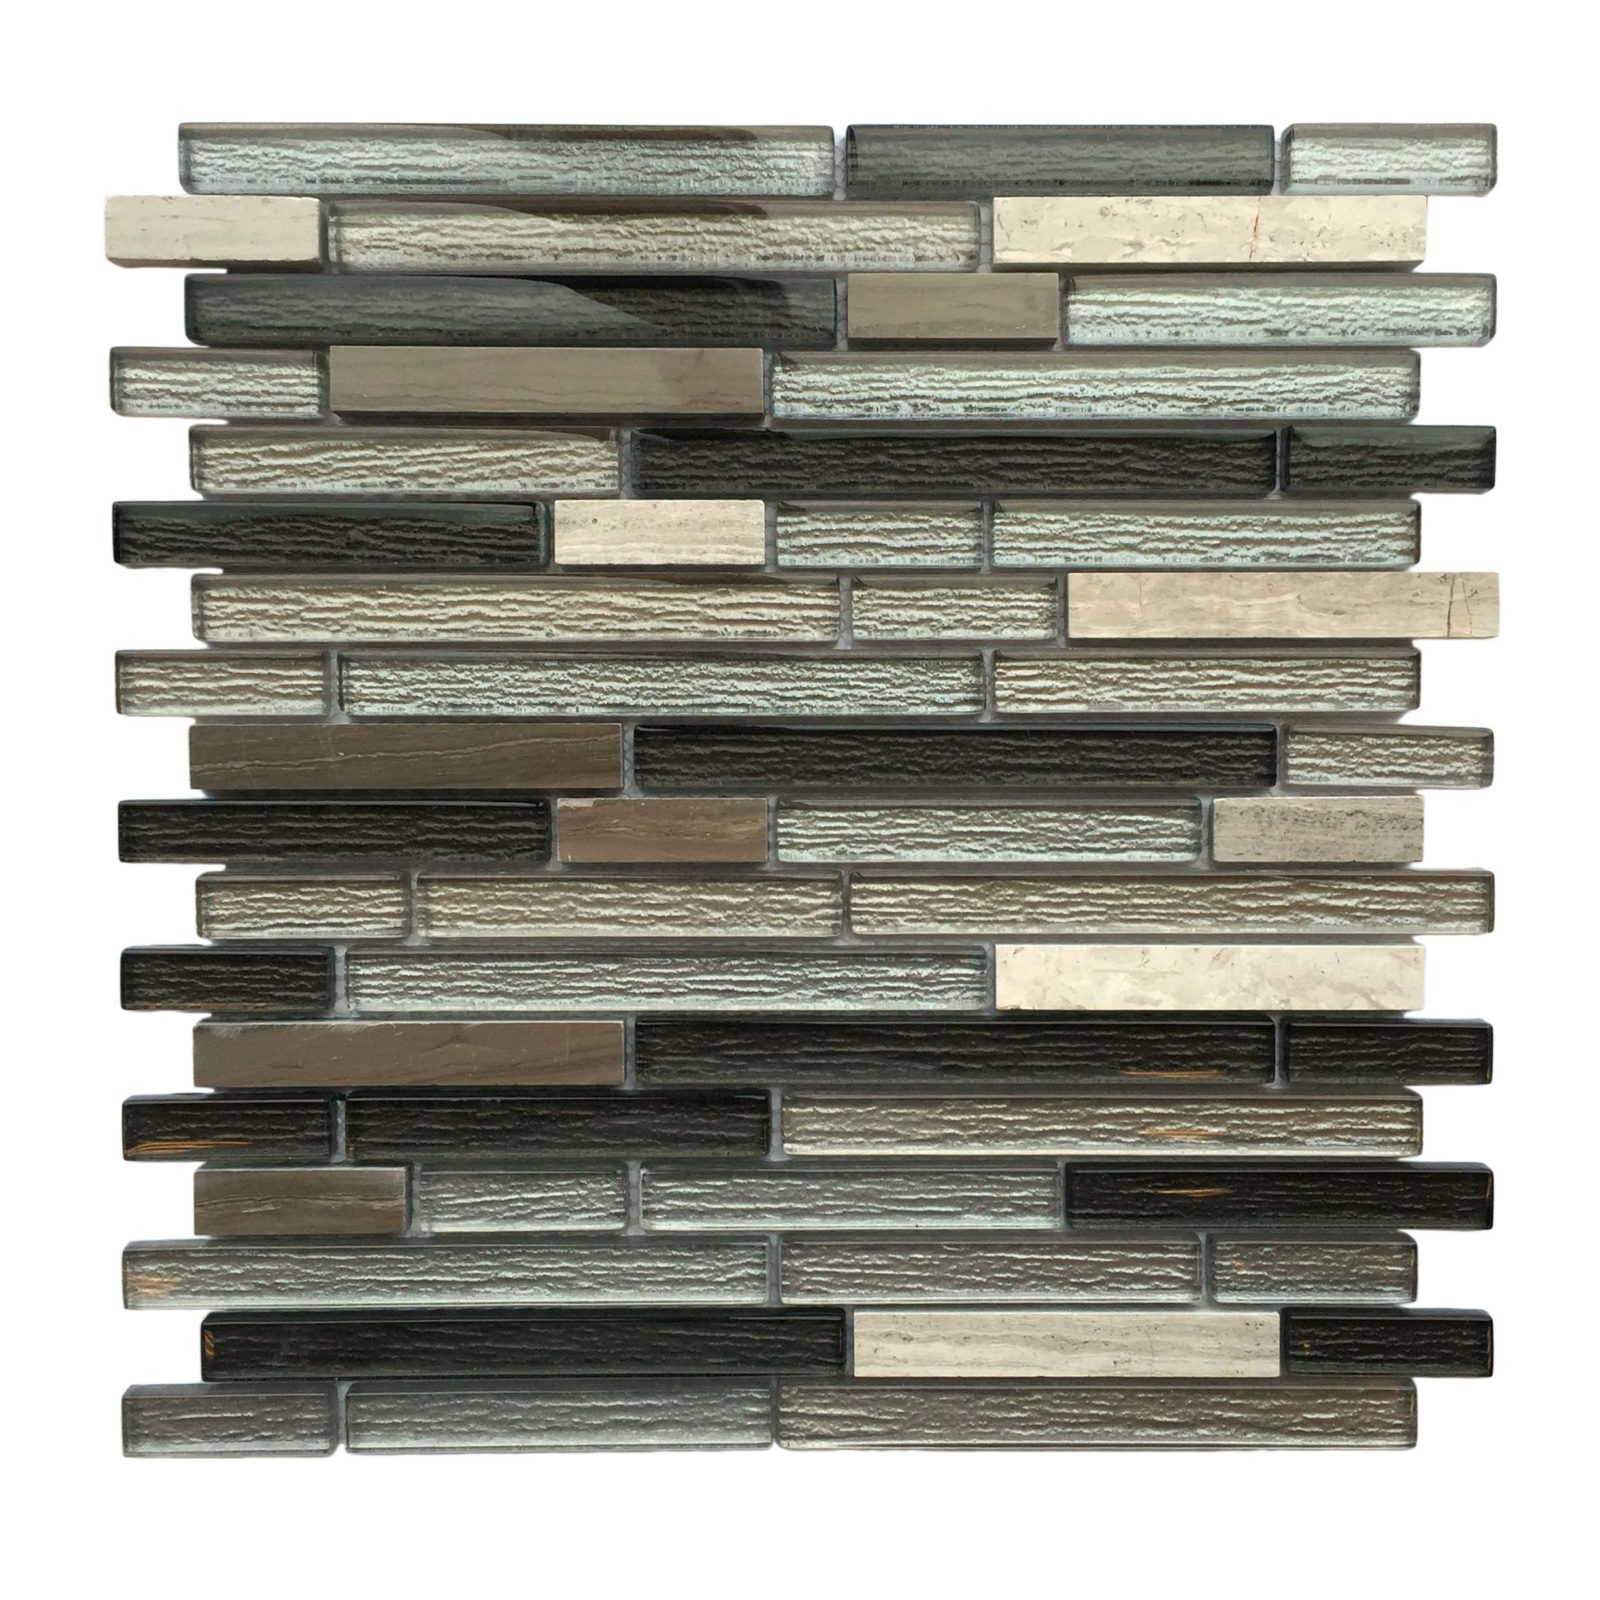 random strip glass and stone mosaic backsplash sheet AL770